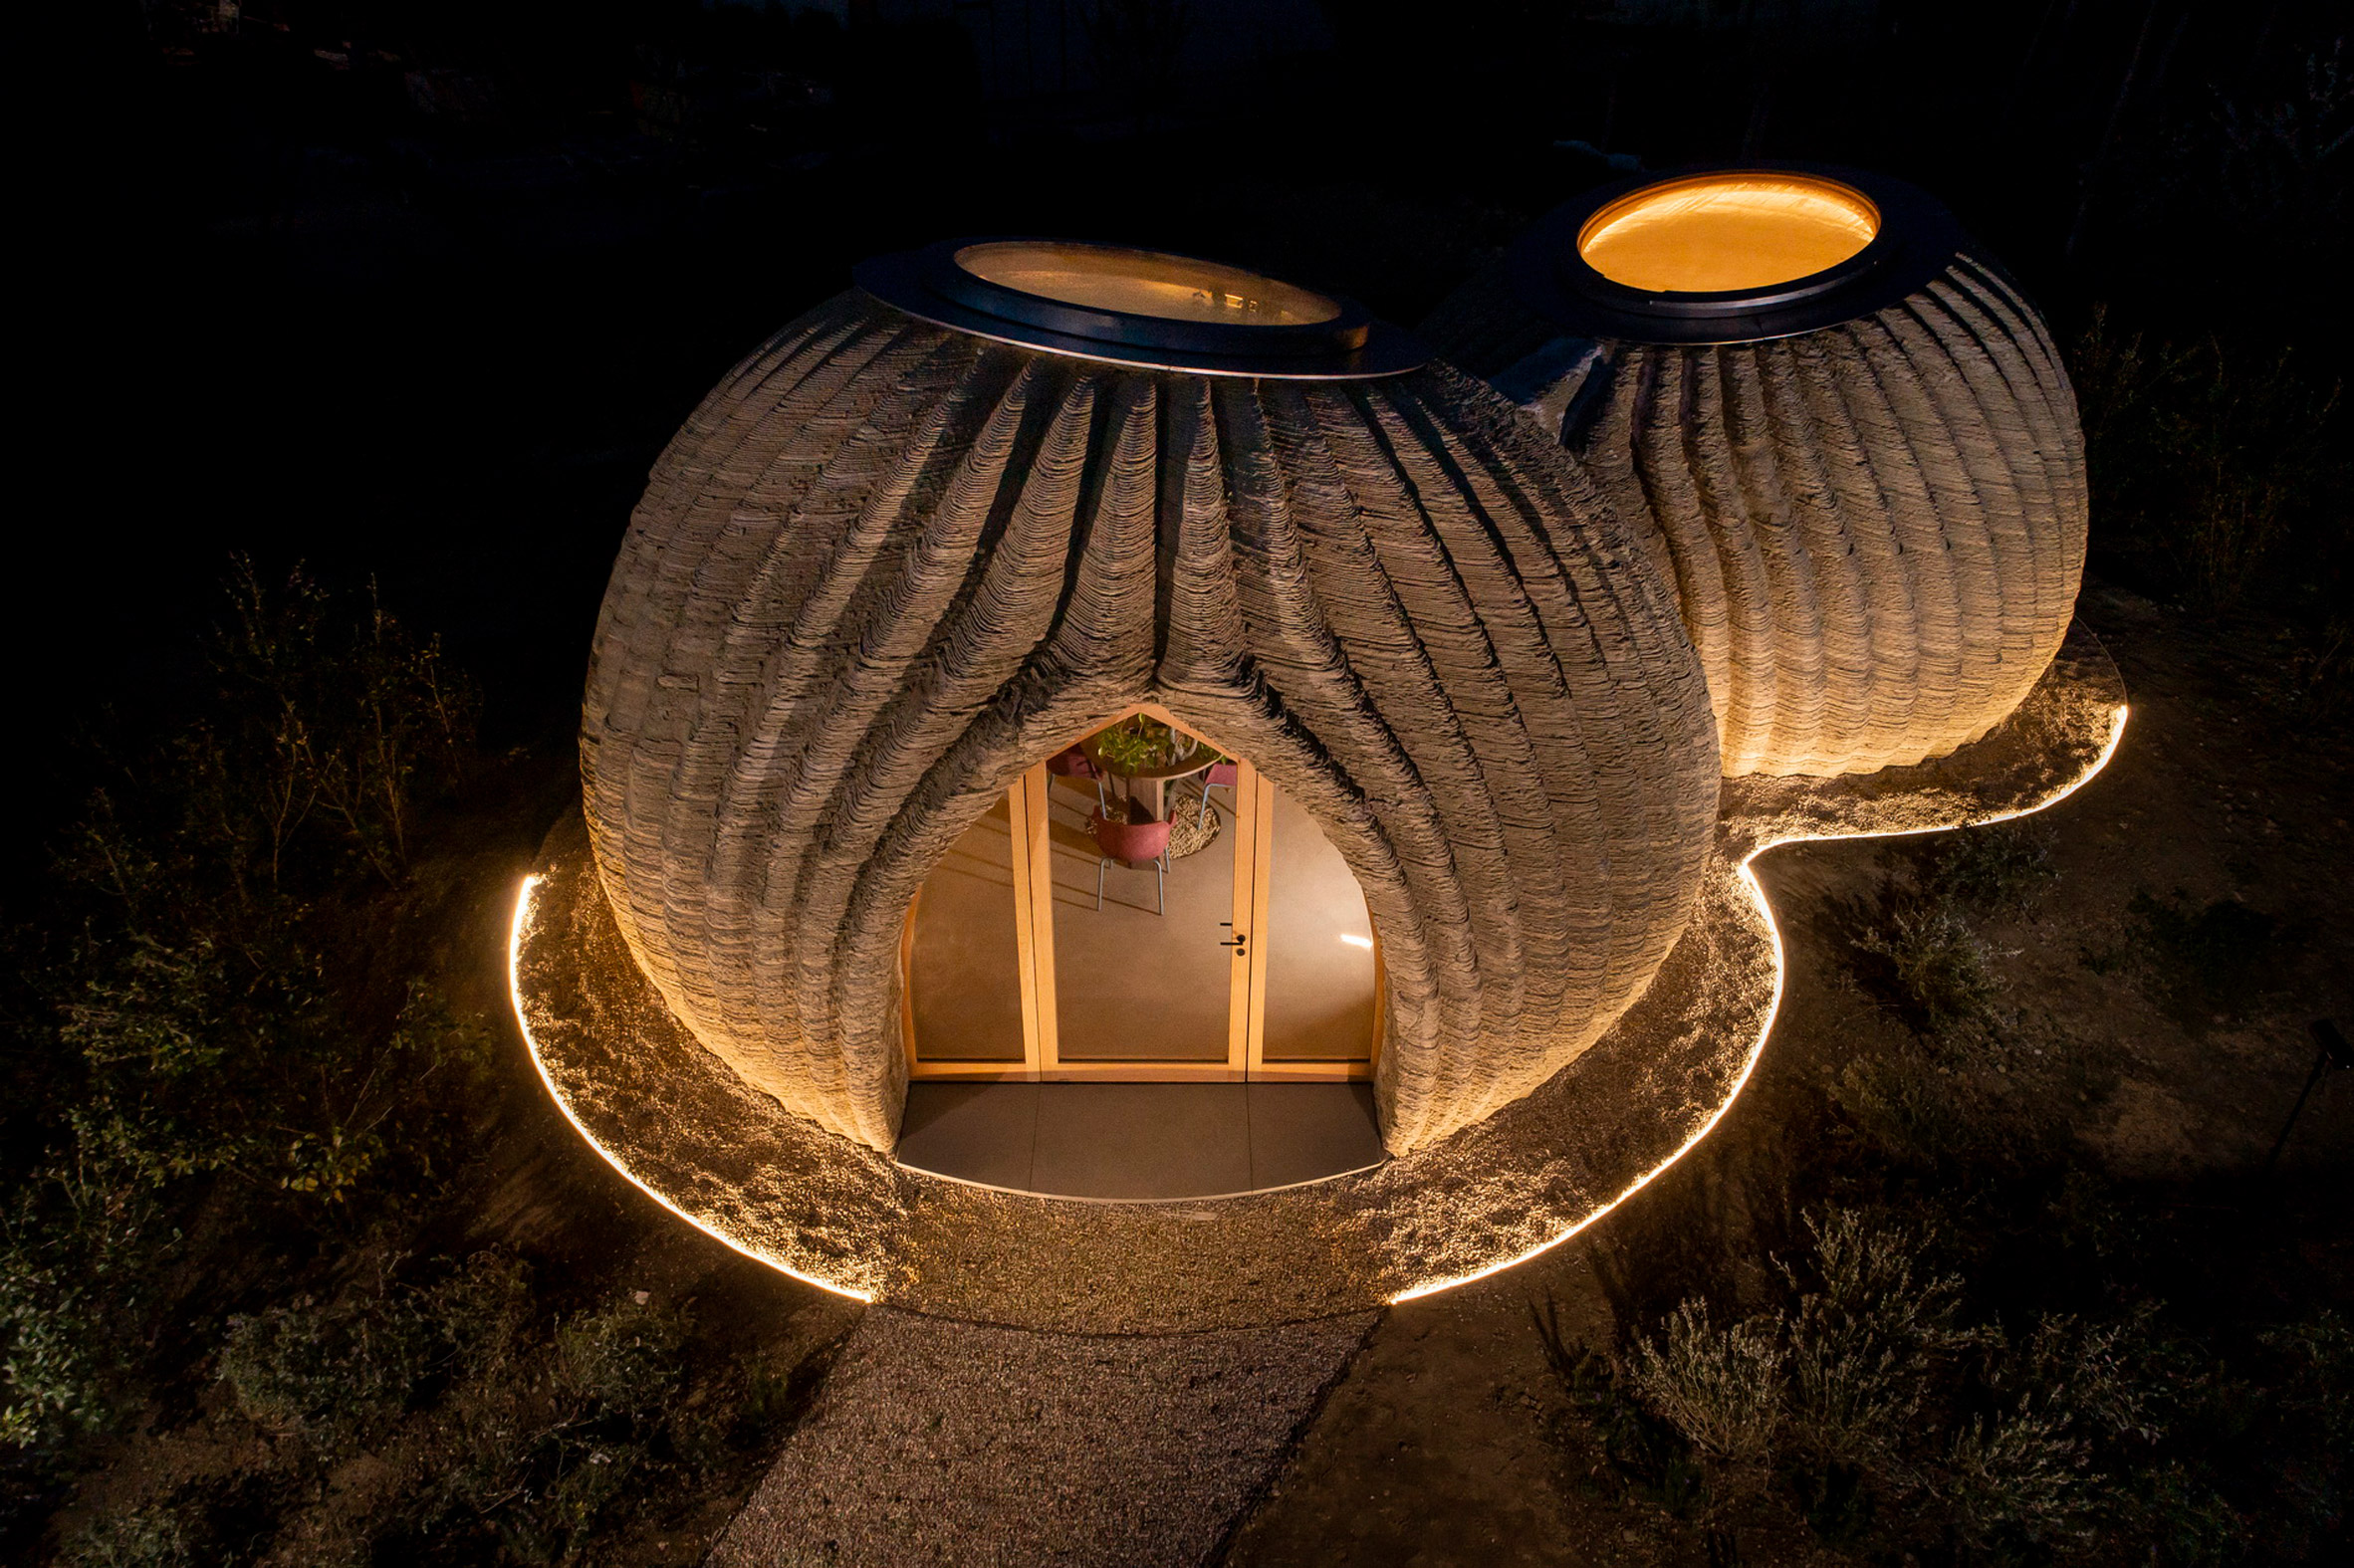 The 3D-printed prototypes are fitted with a skylight by Mario Cucinella Architects and Wasp